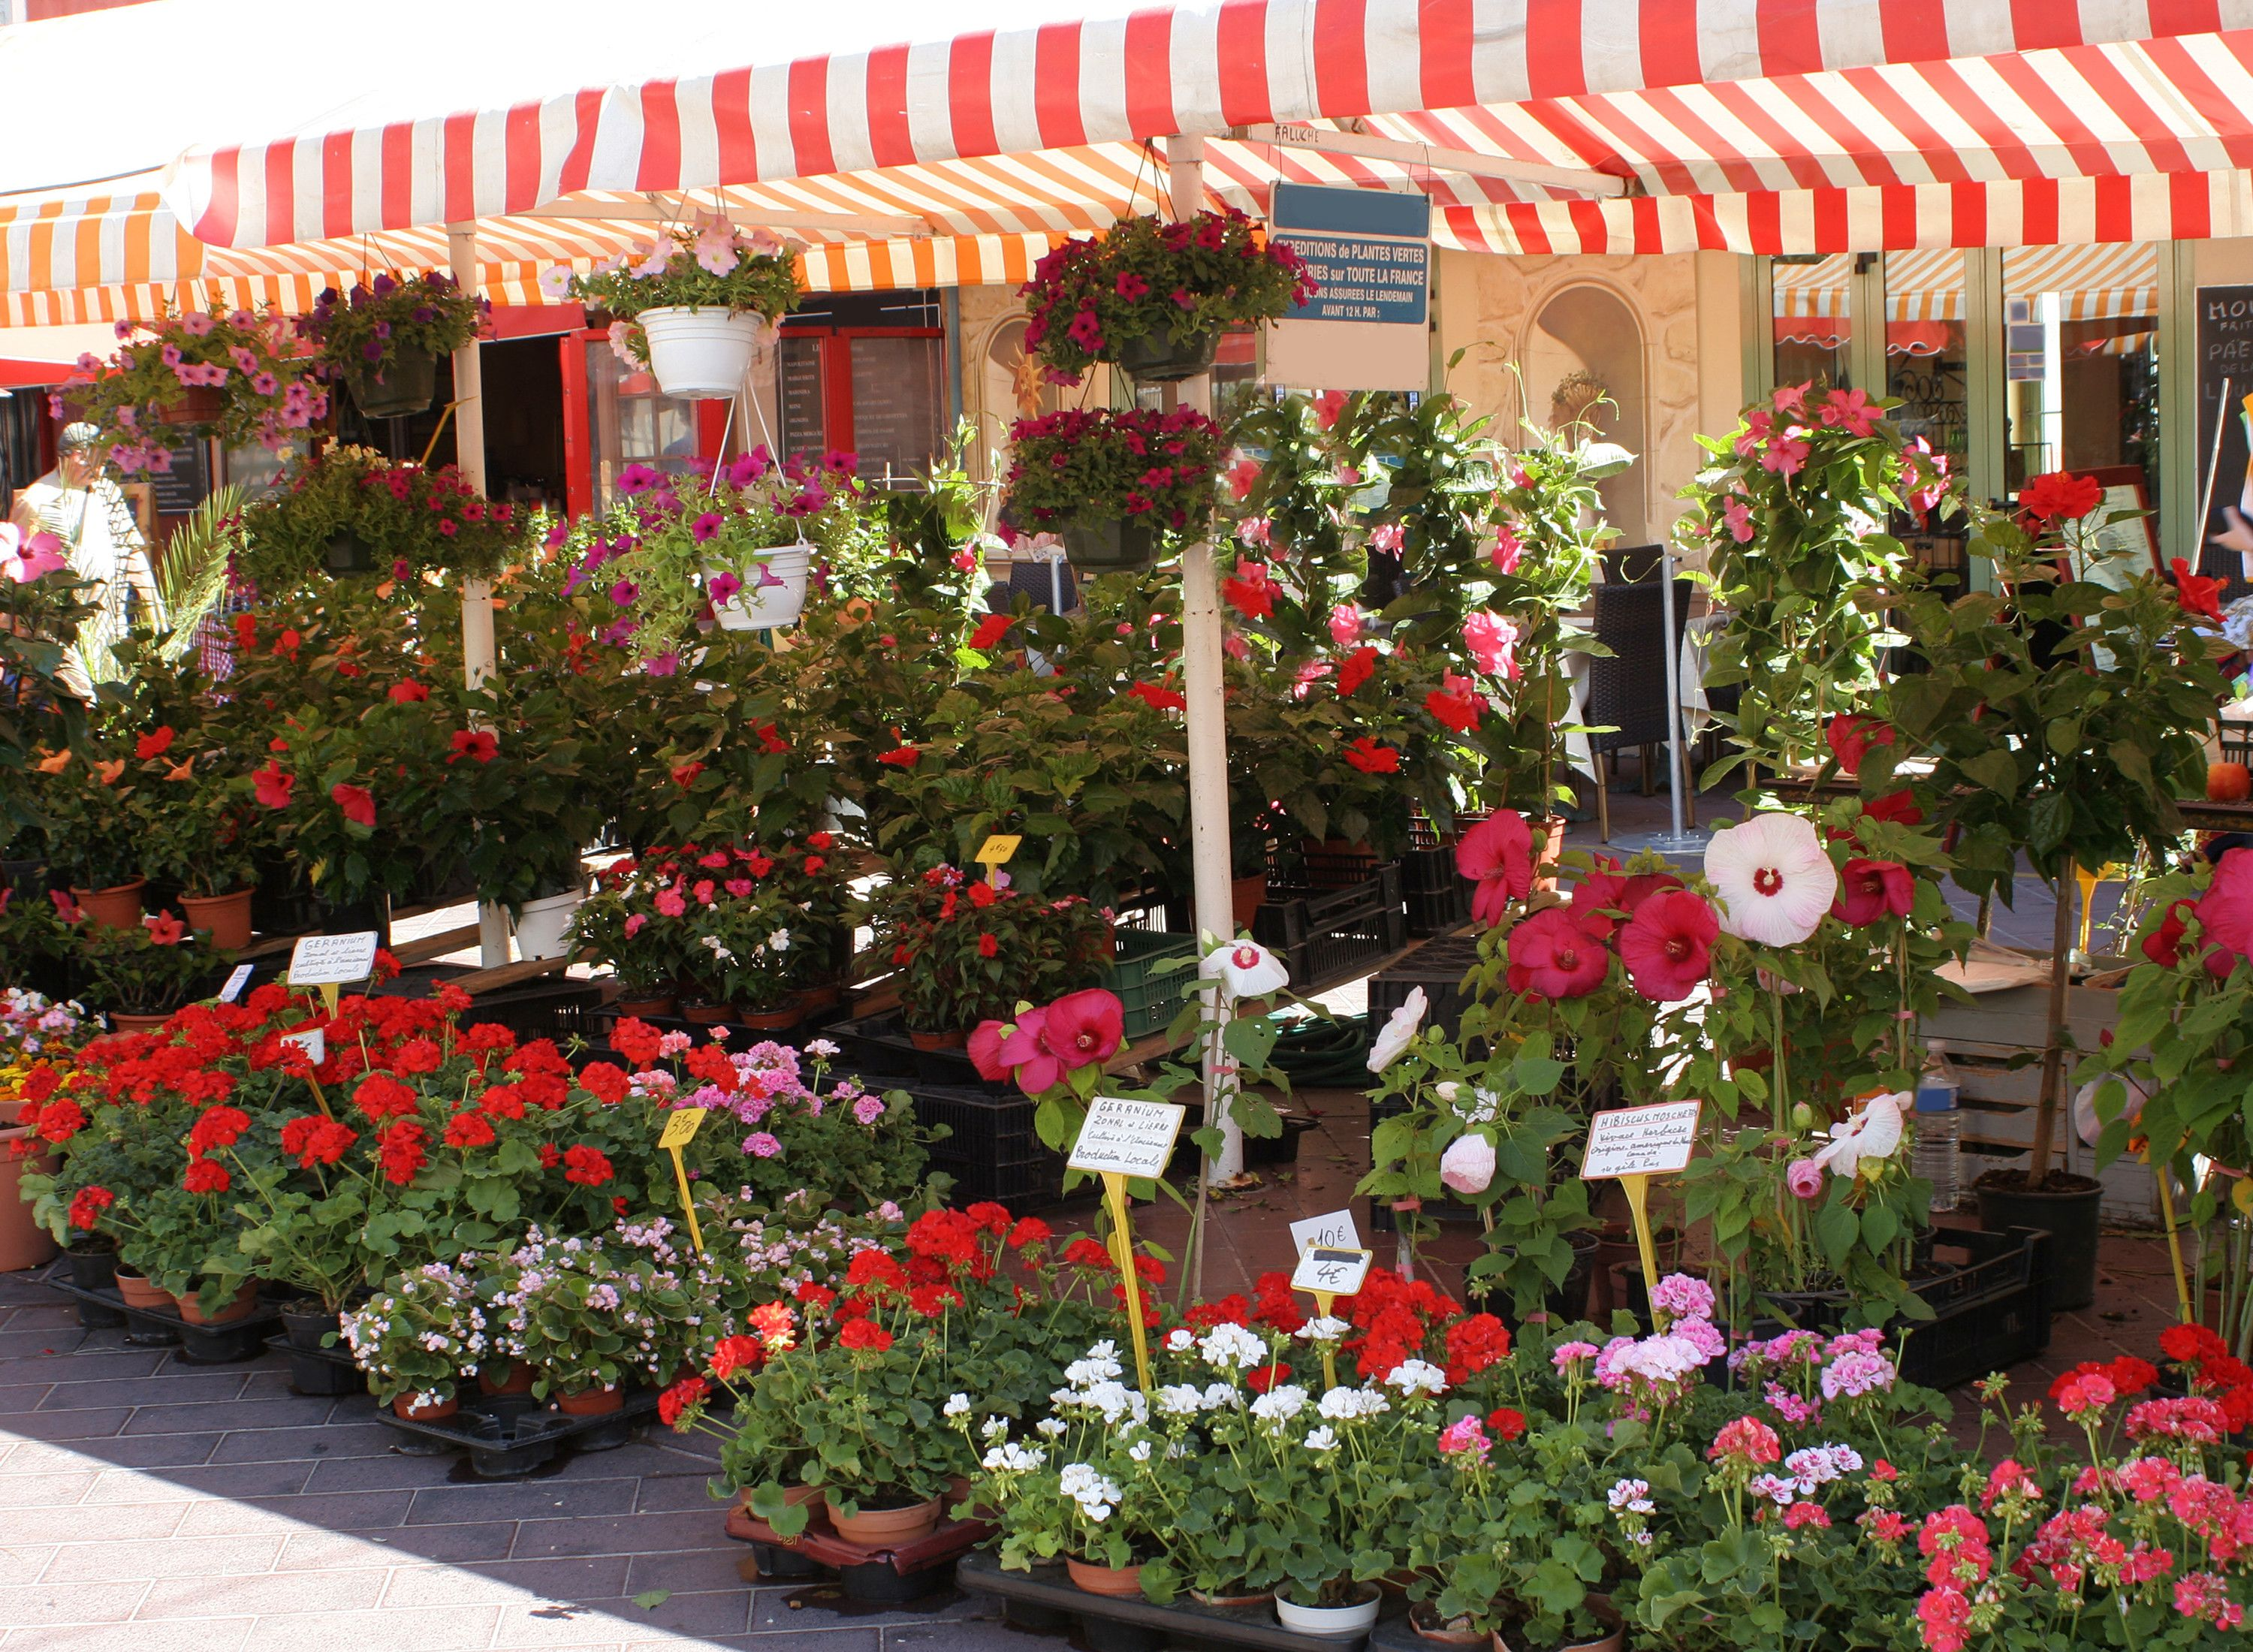 French Market Inspires Images Of A Parisian Flower Stall With Roses Magnolia Gardenia Tuberose And Arris Blossom Outdoor Flowers Plants Inspirational Images